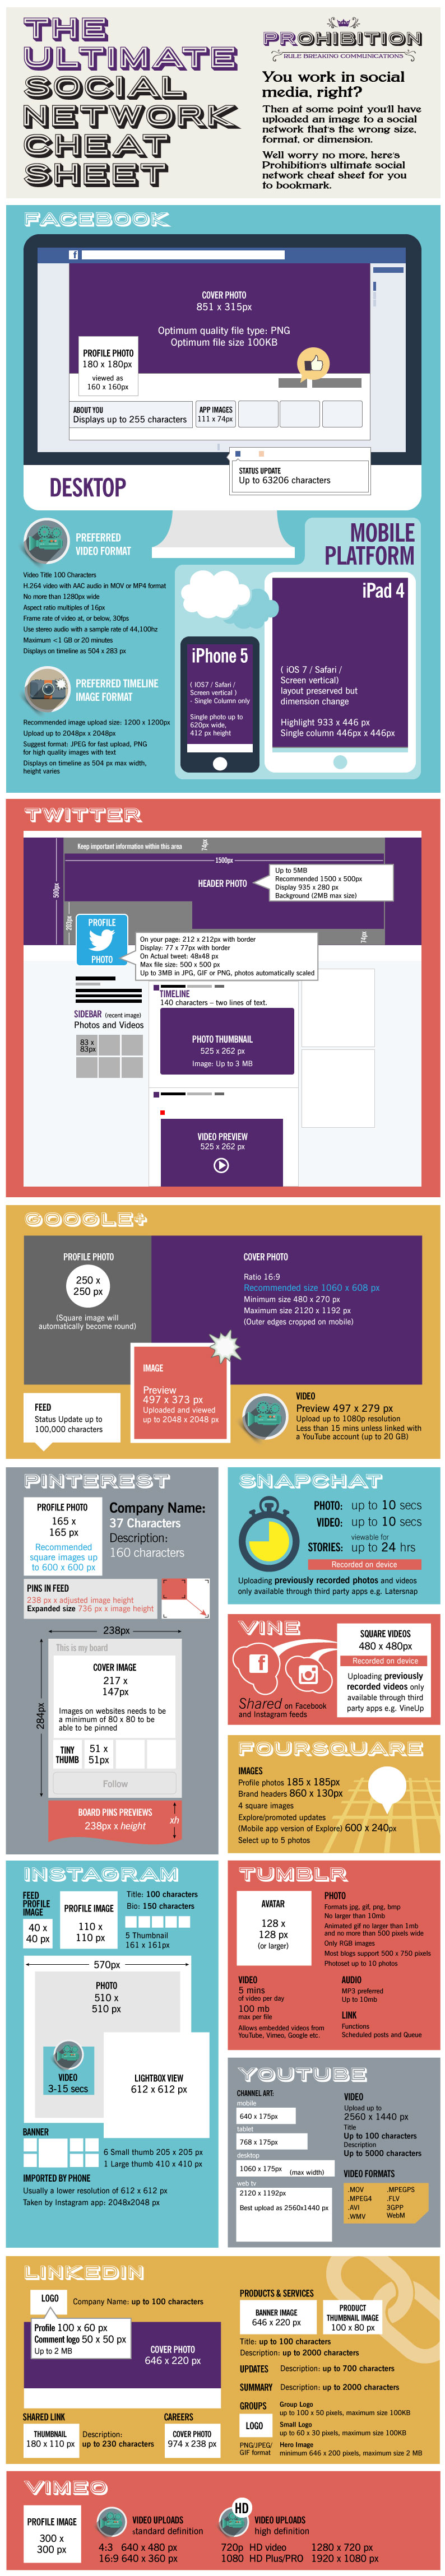 Social-Media-Cheat-Sheet_AW1